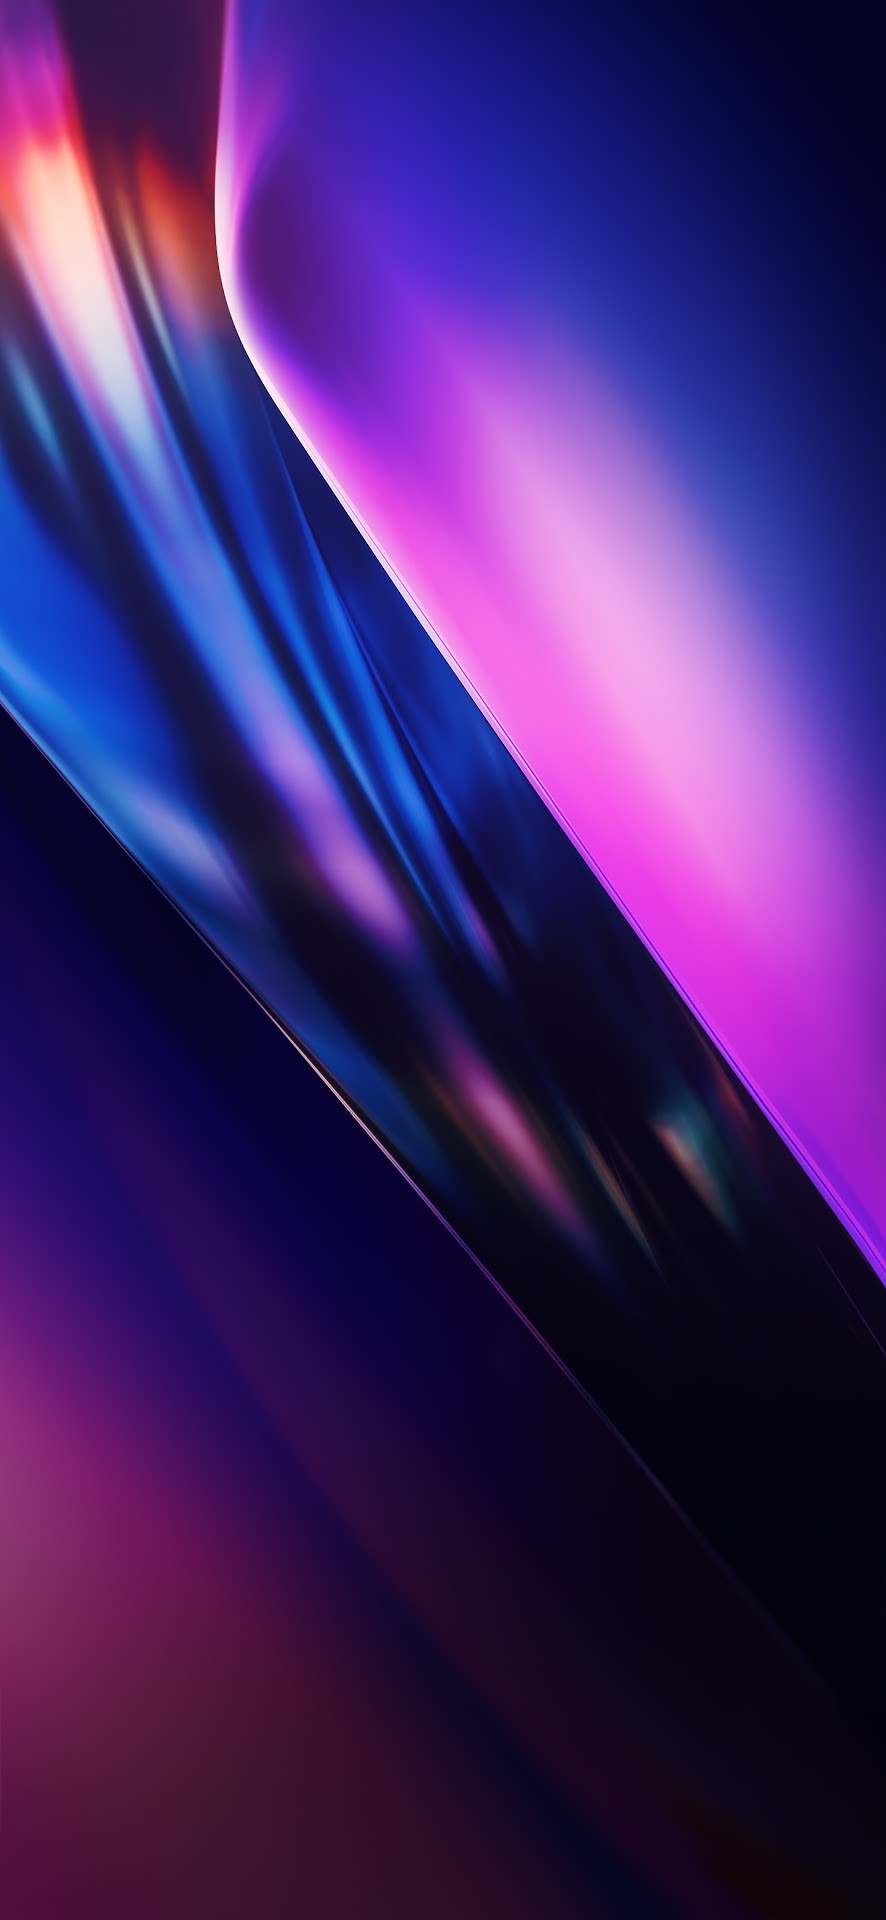 Download Oneplus 8 Wallpapers In 4k And Ultra Hd Resolution Android Tutorial